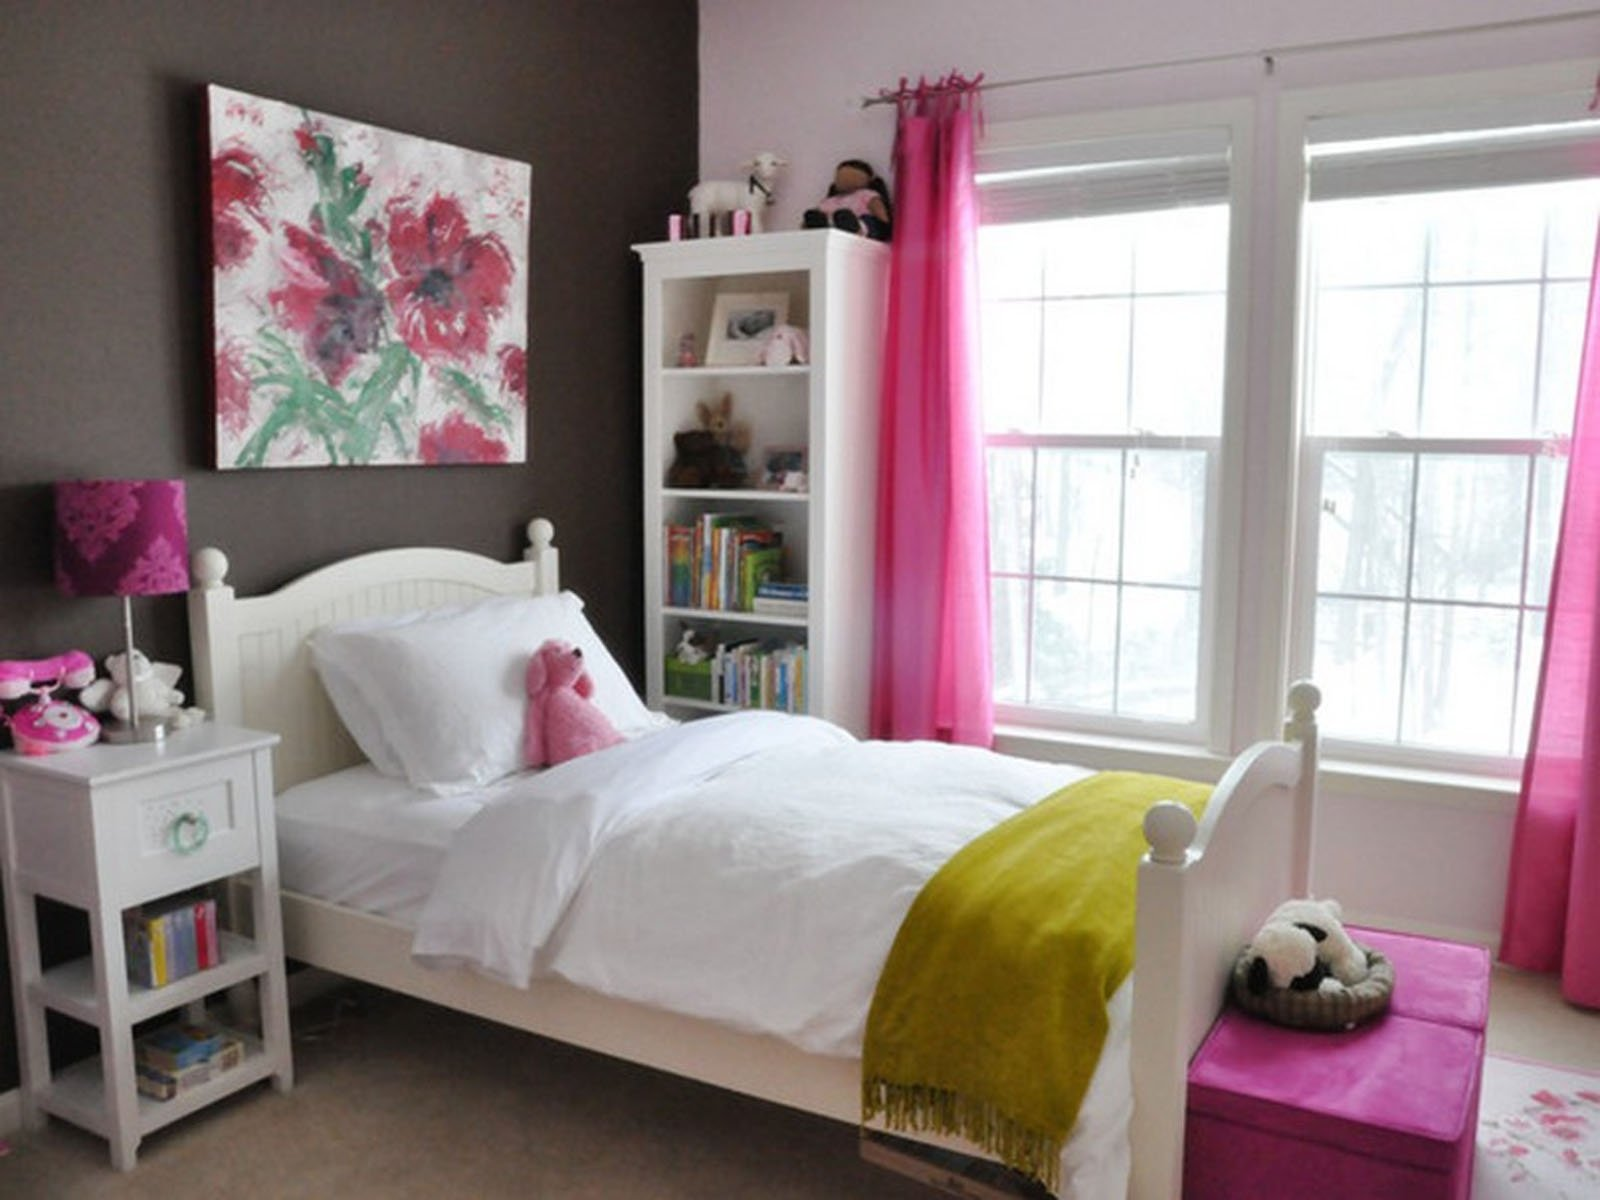 10 Beautiful Room Ideas For Small Rooms room girl design simple and affordable small bedroom decorating 2020